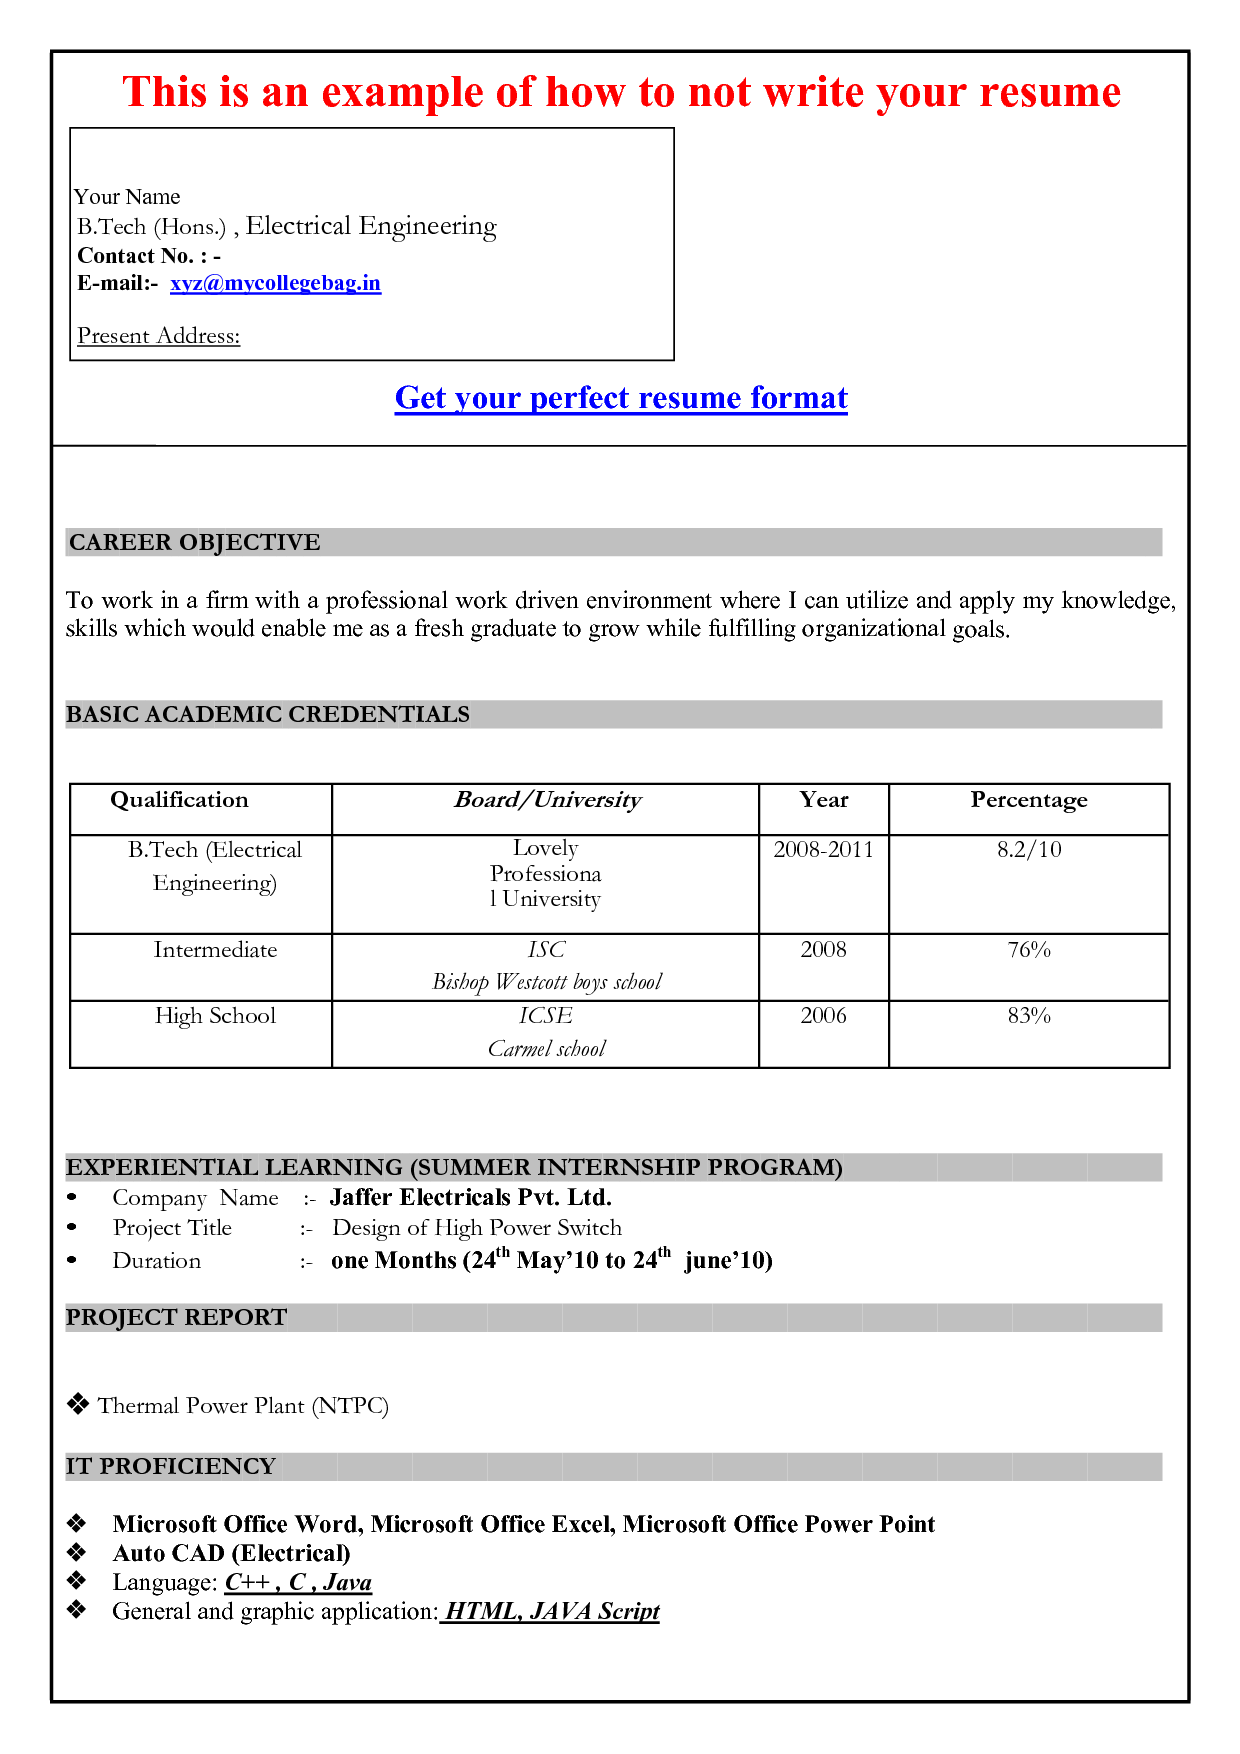 curriculum vitae 2015 download